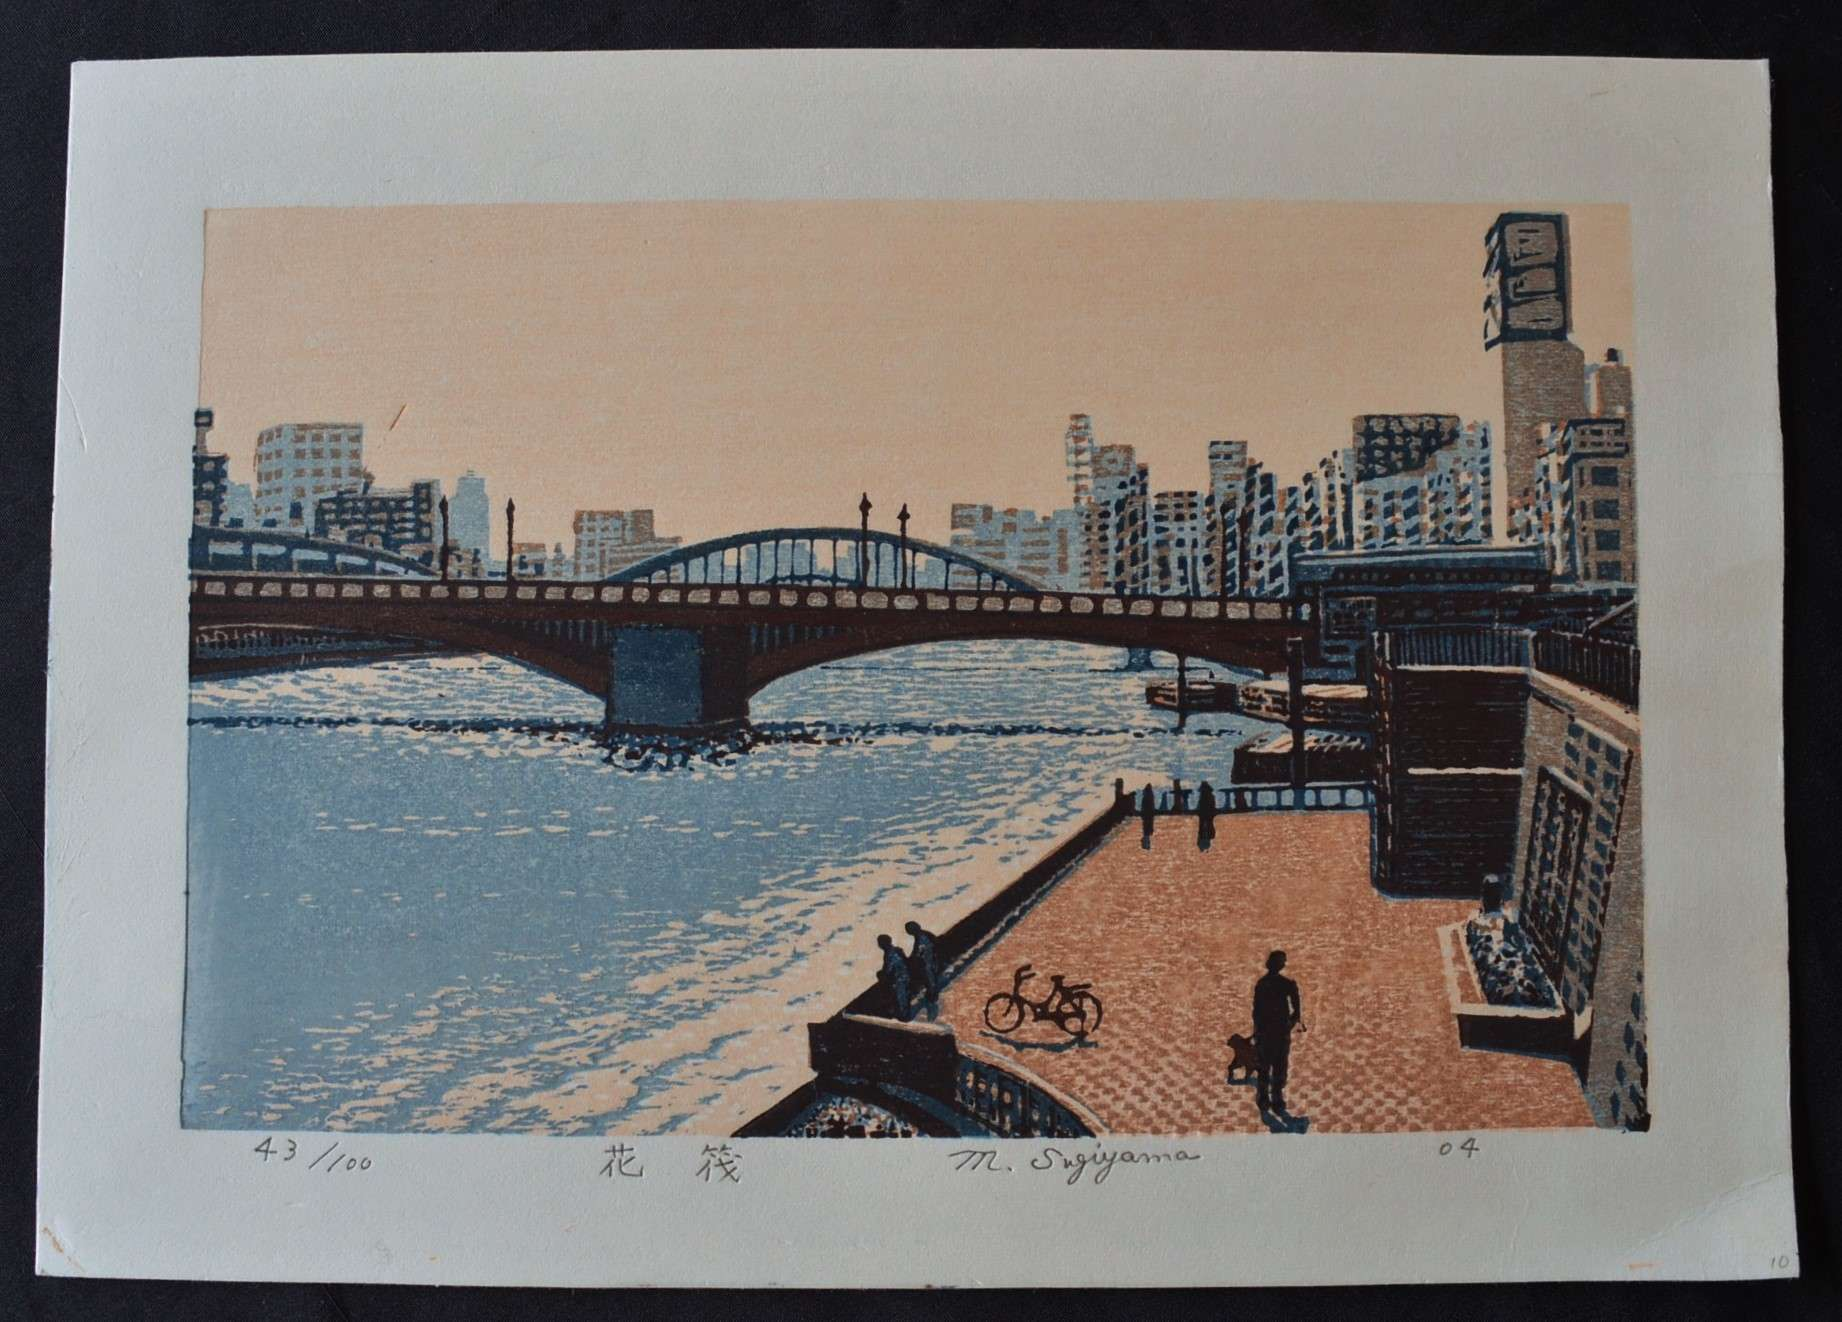 Motosugo Sugiyama: #P1547 RIVER SIDE